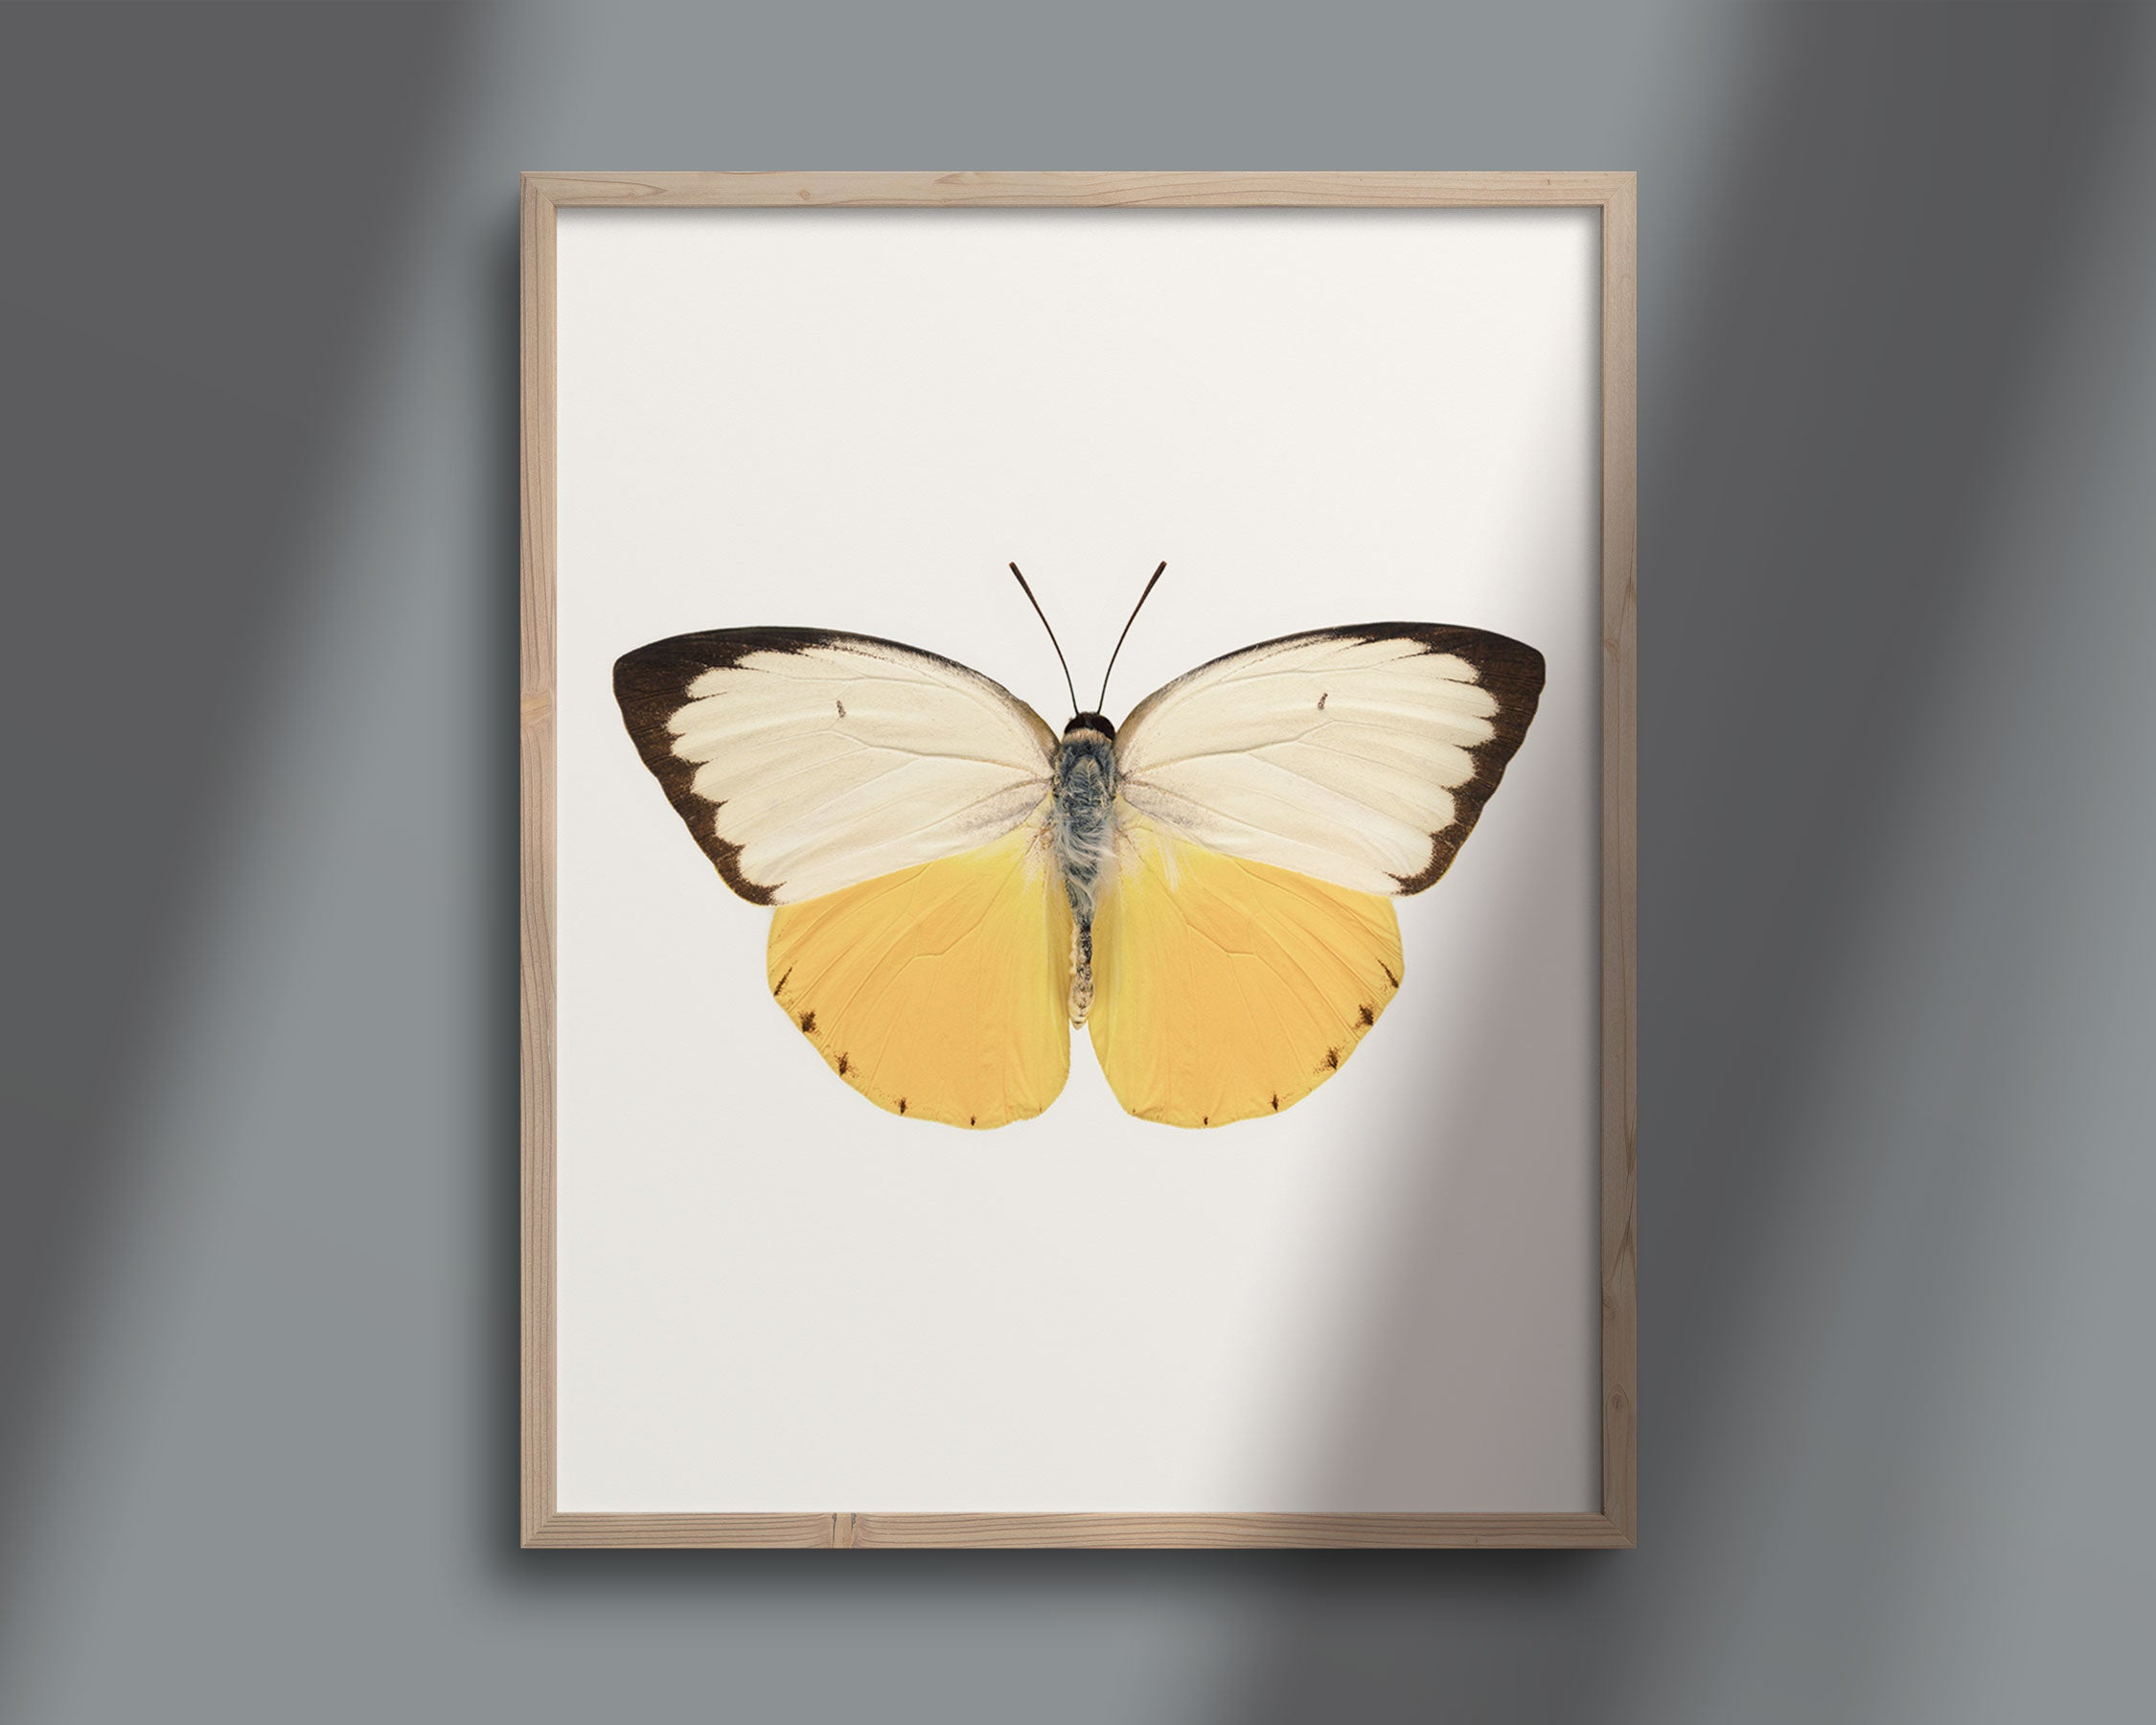 Butterfly Photo No. 7 - Catopsilia scylla - Orange Migrant Butterfly Print